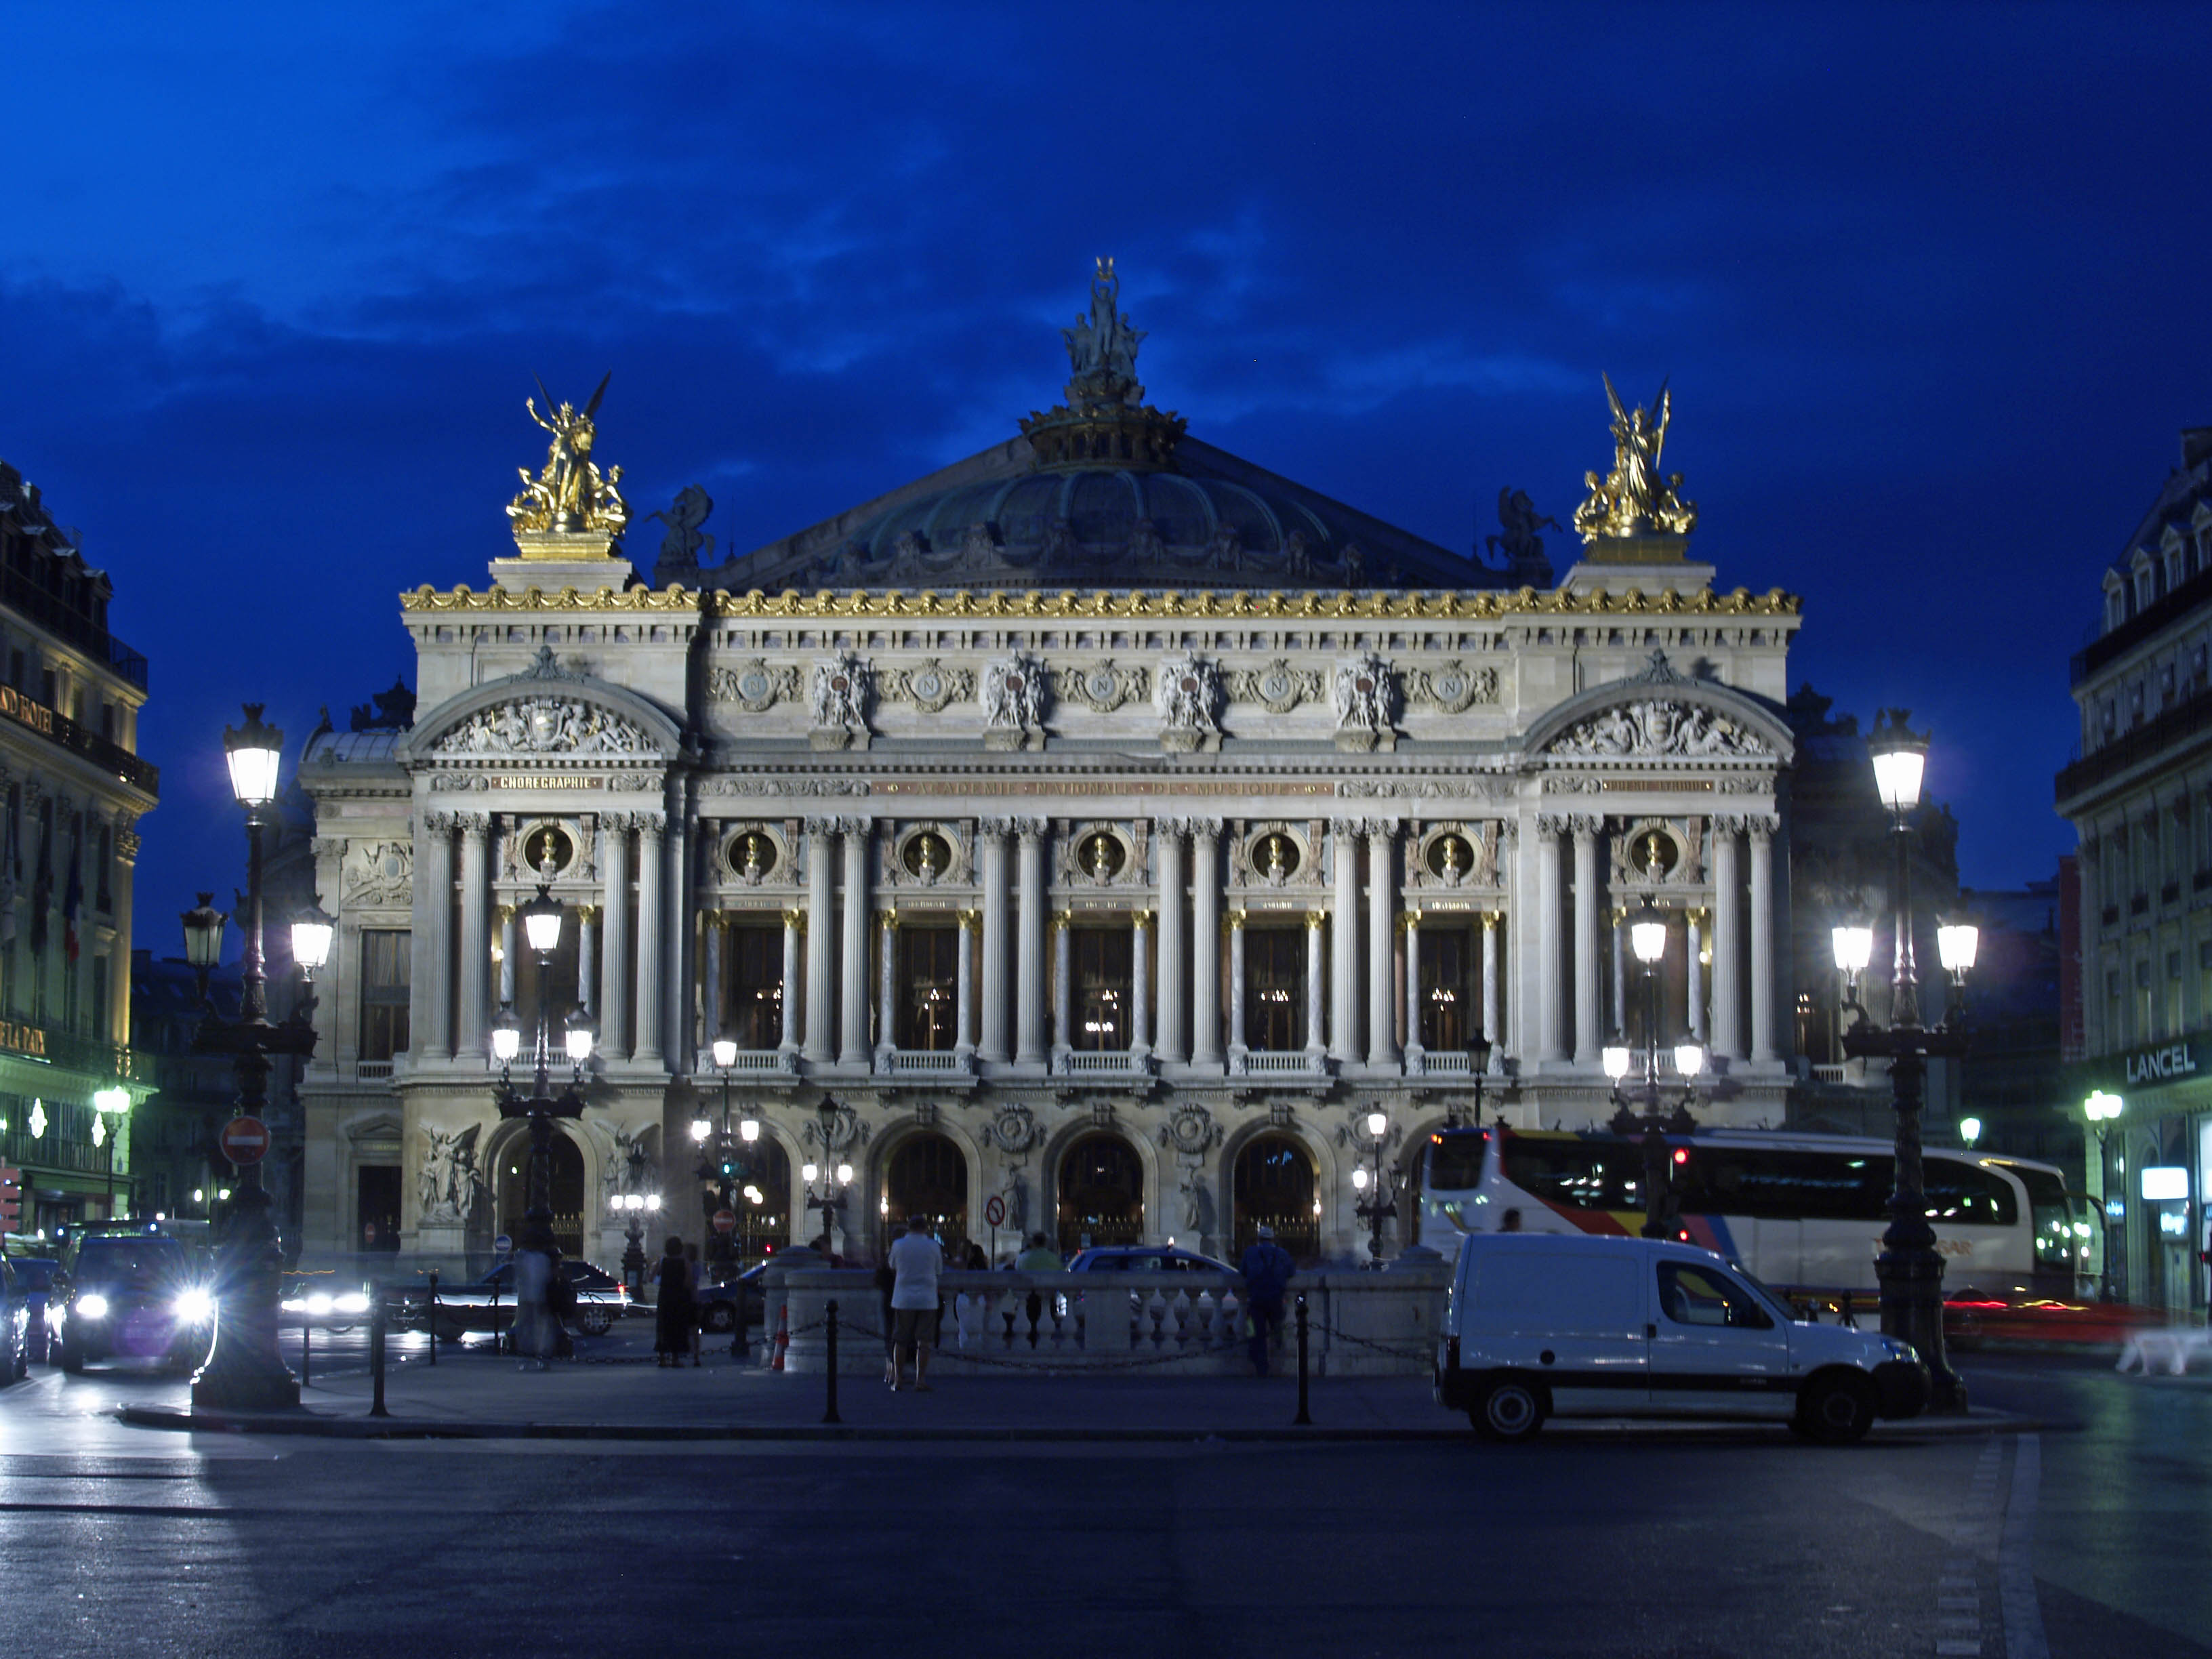 File:Paris old opera house jpg - Wikimedia Commons